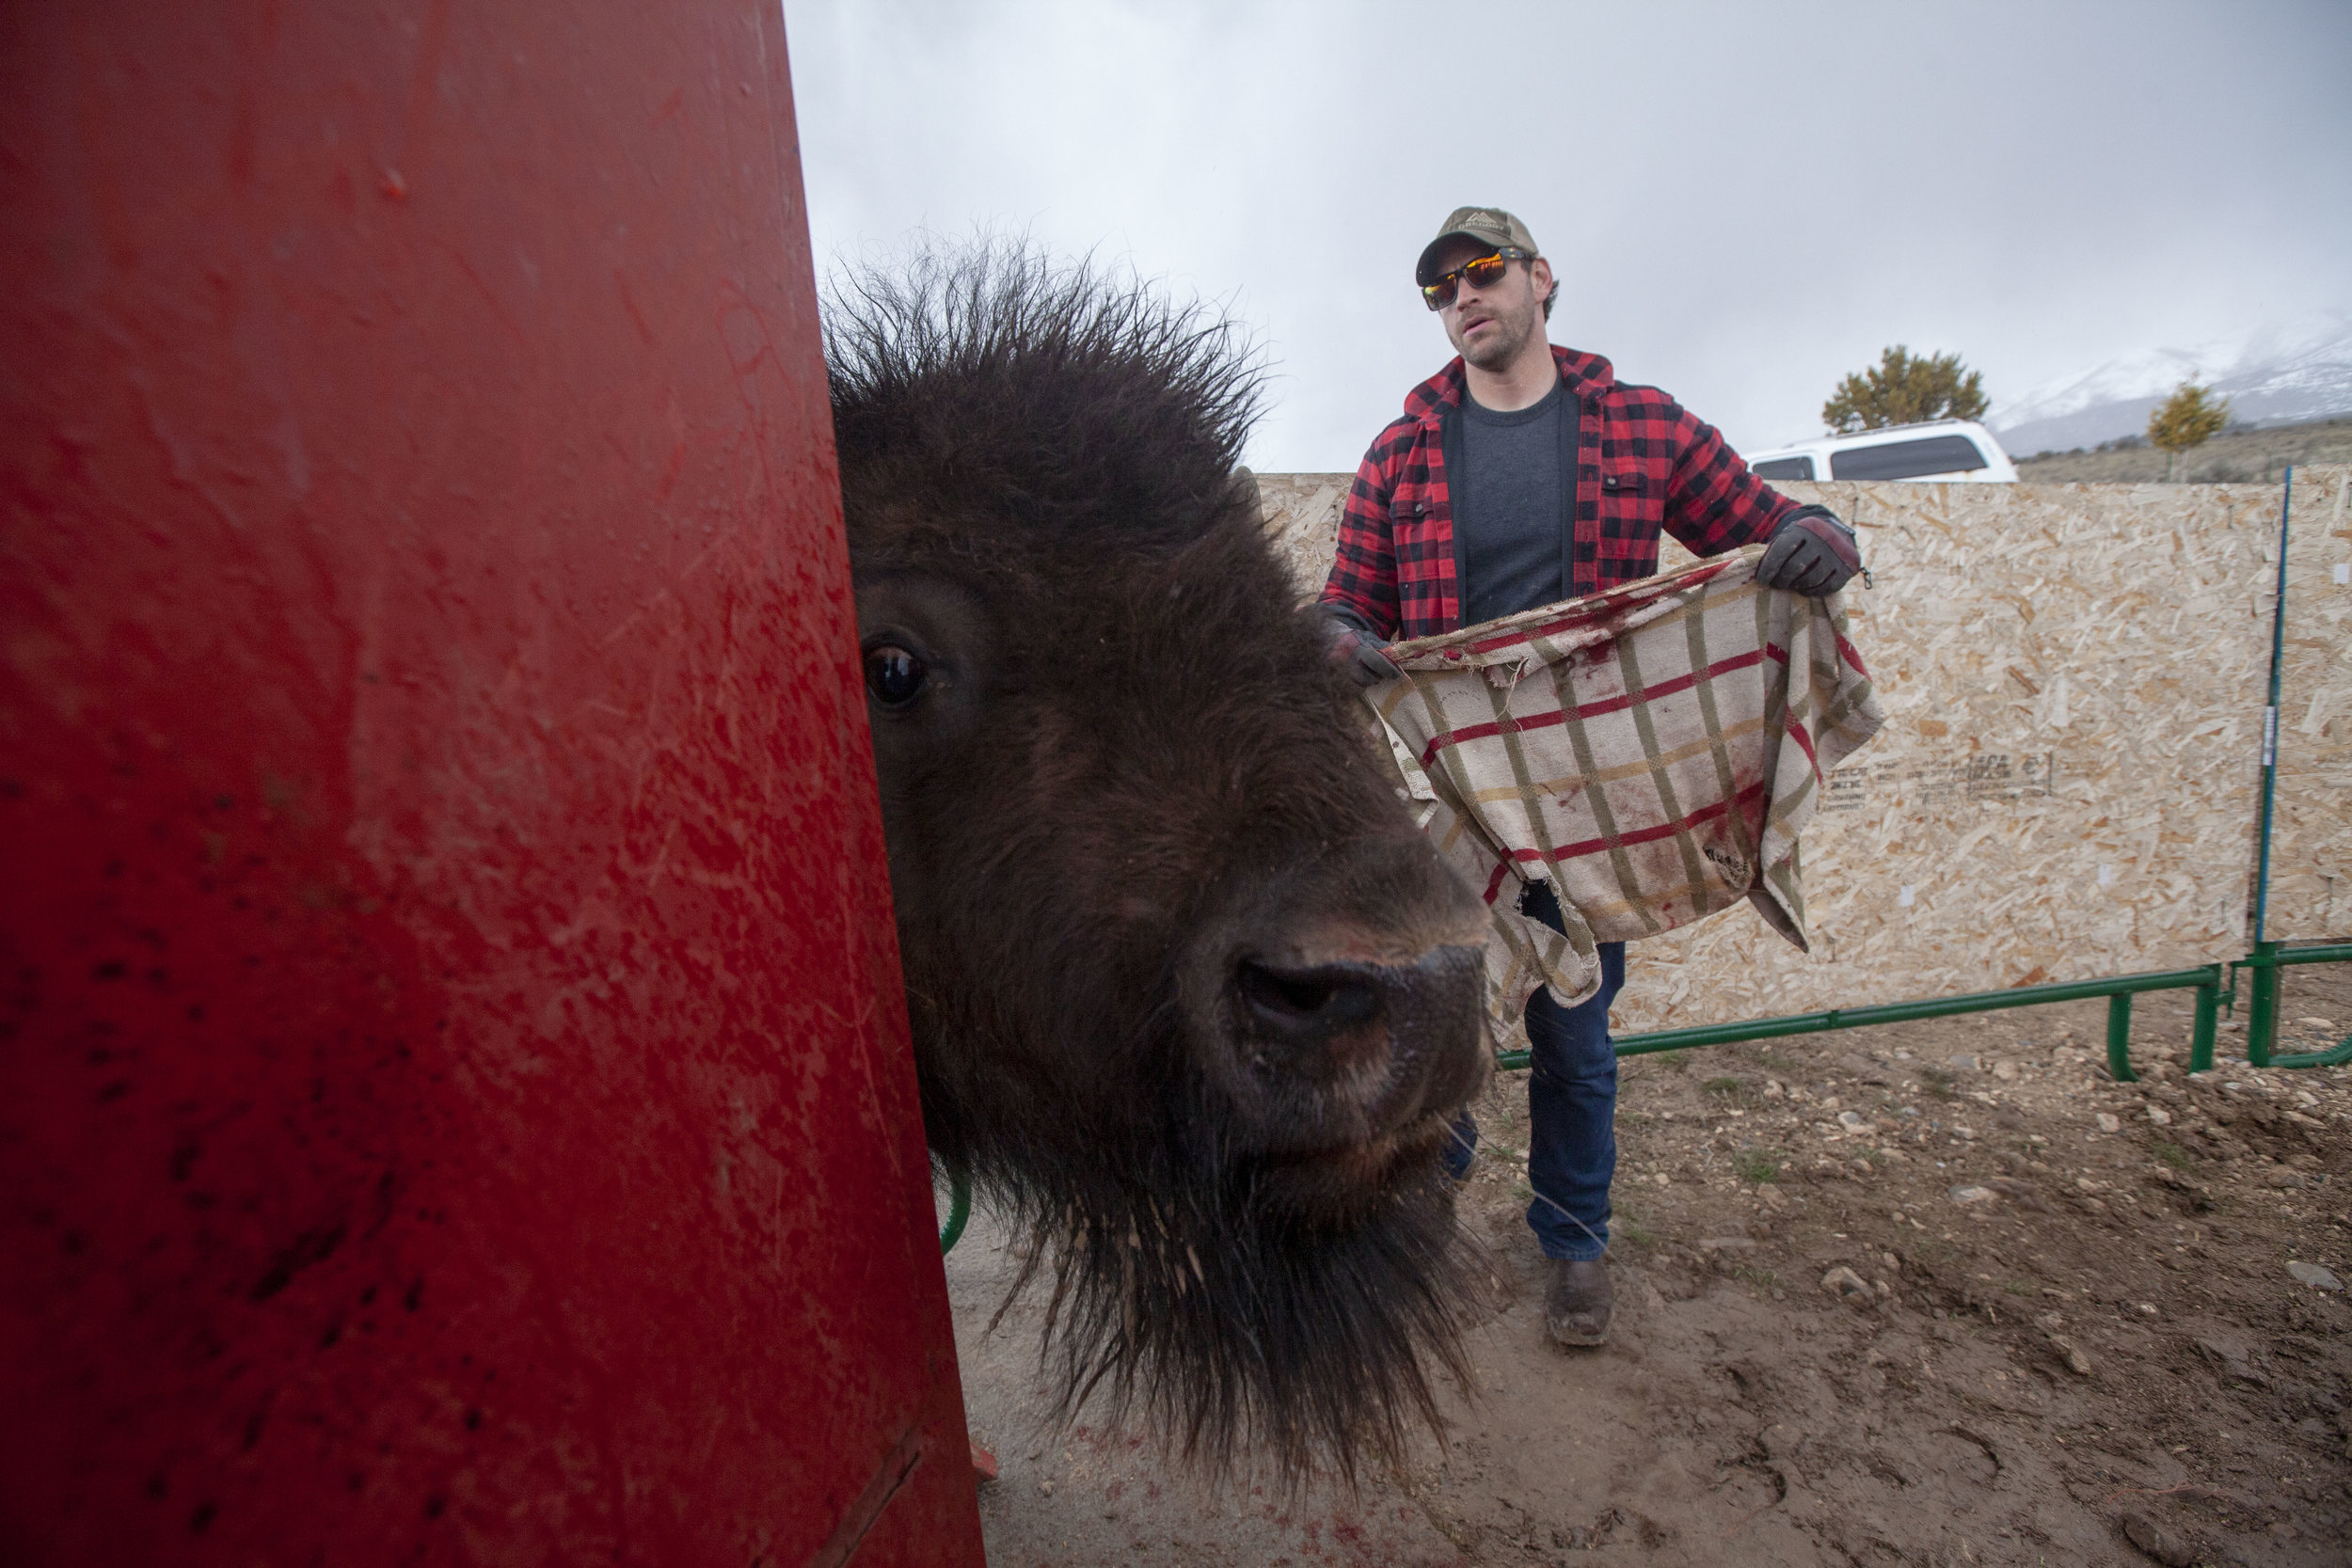 Volunteer Chet Vernon prepares to throw a towel over a bison's head, as a blinder to reduce the animal's stress.